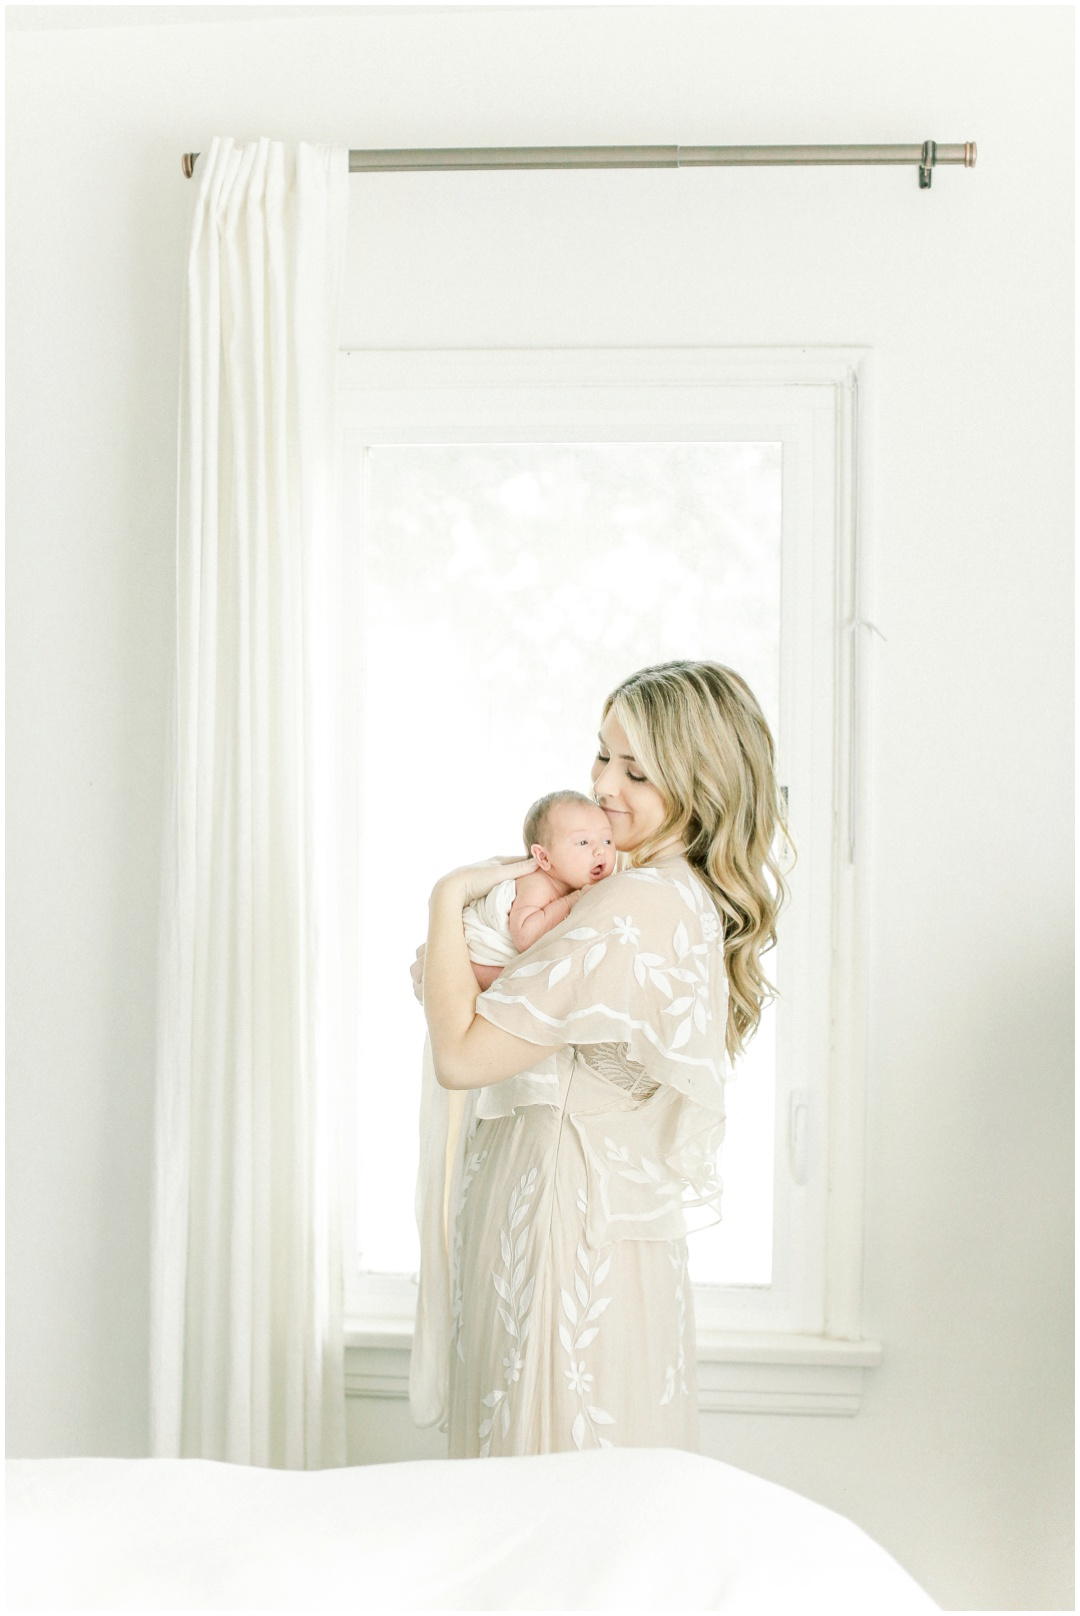 Newport_Beach_Newborn_Photographer_Newport_Beach_Maternity_Photographer_Orange_County_Family_Photographer_Cori_Kleckner_Photography_Huntington_Beach_Photographer__Erin_Dooney_Brandon_Dooney__Avery_Dooney_Family_Photos__2827.jpg